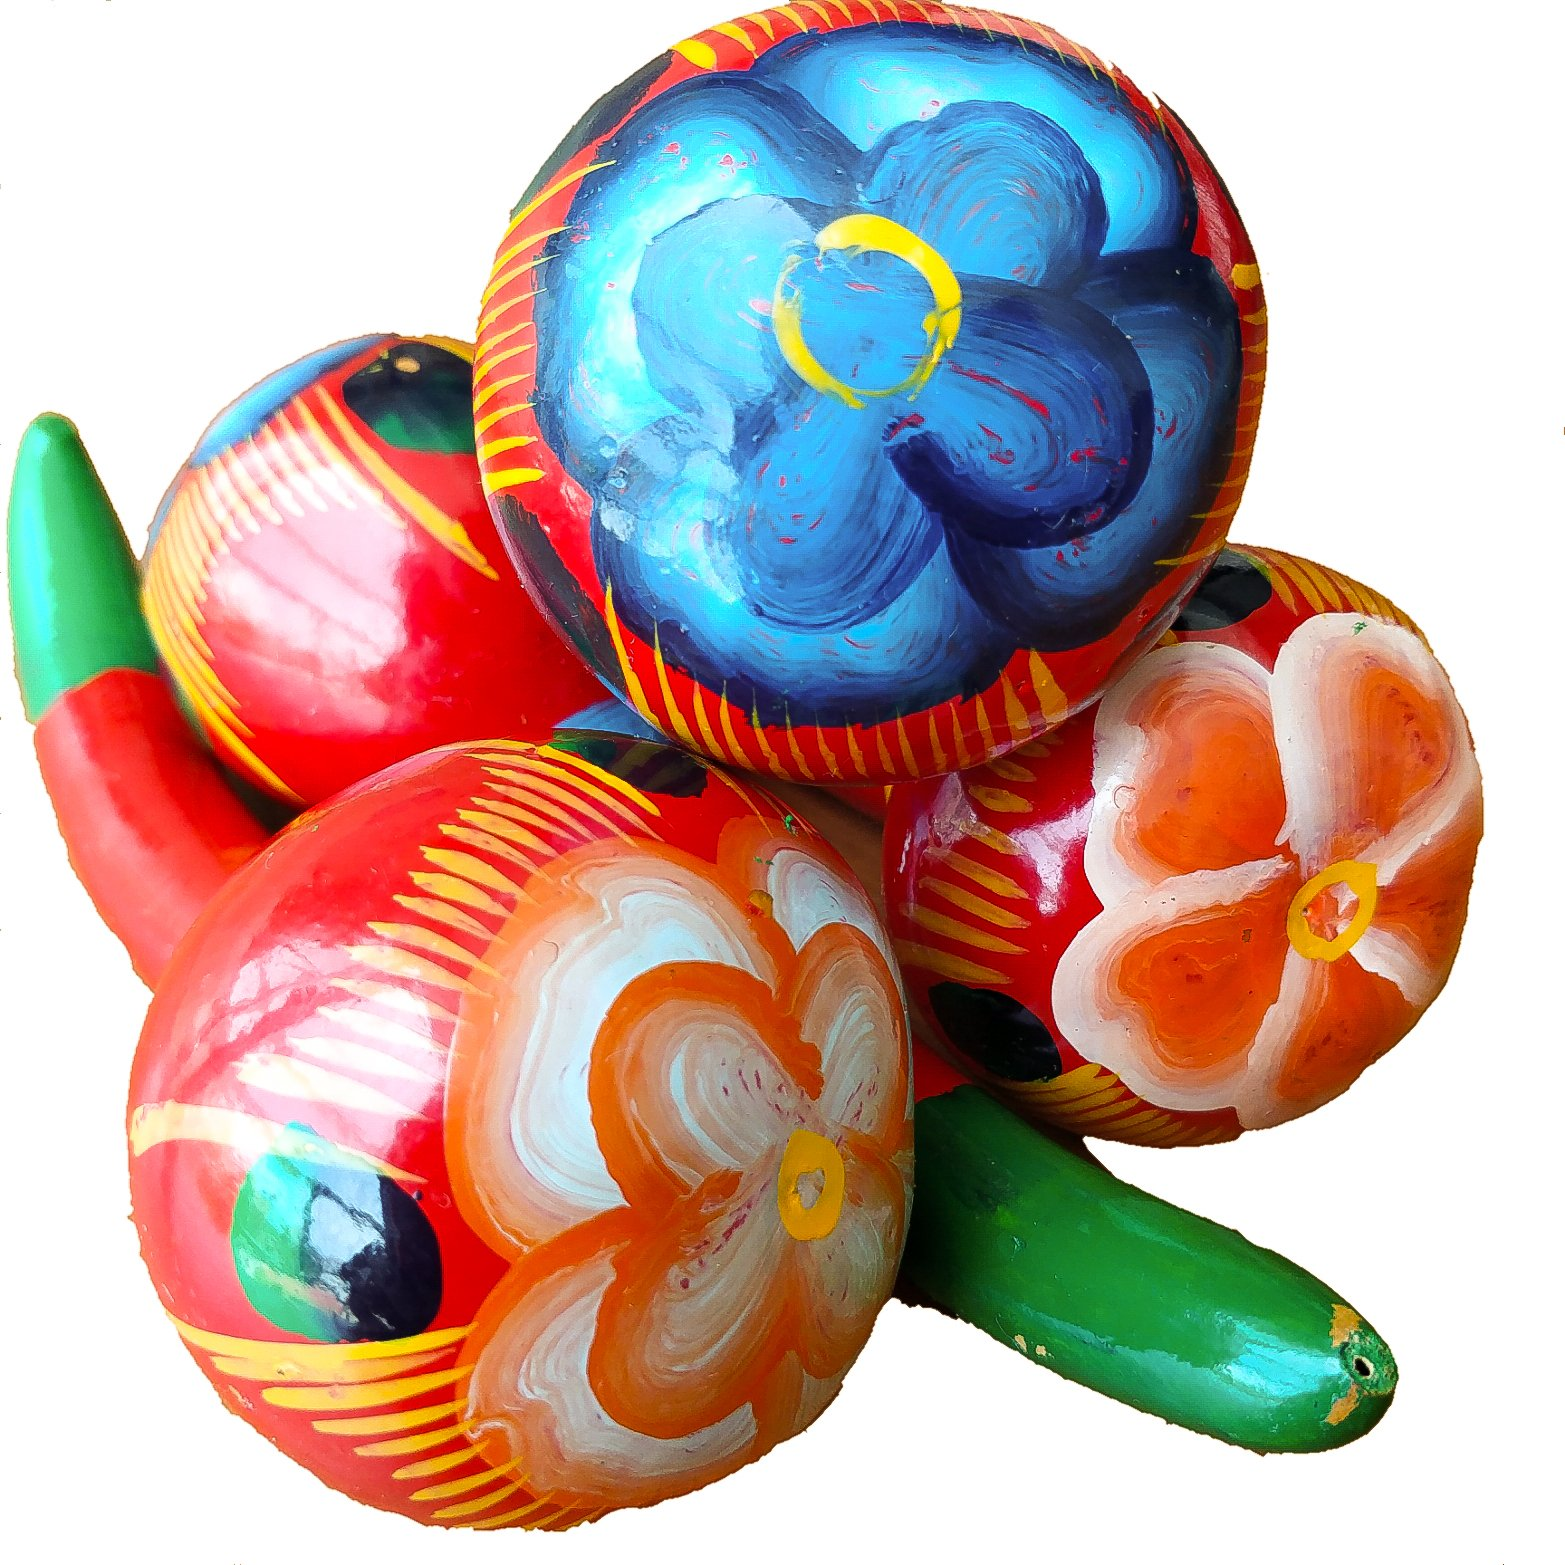 4 Mexican Rattles Handmade Colorful Maracas Traditional Ornament Toy Kid Fiesta Party